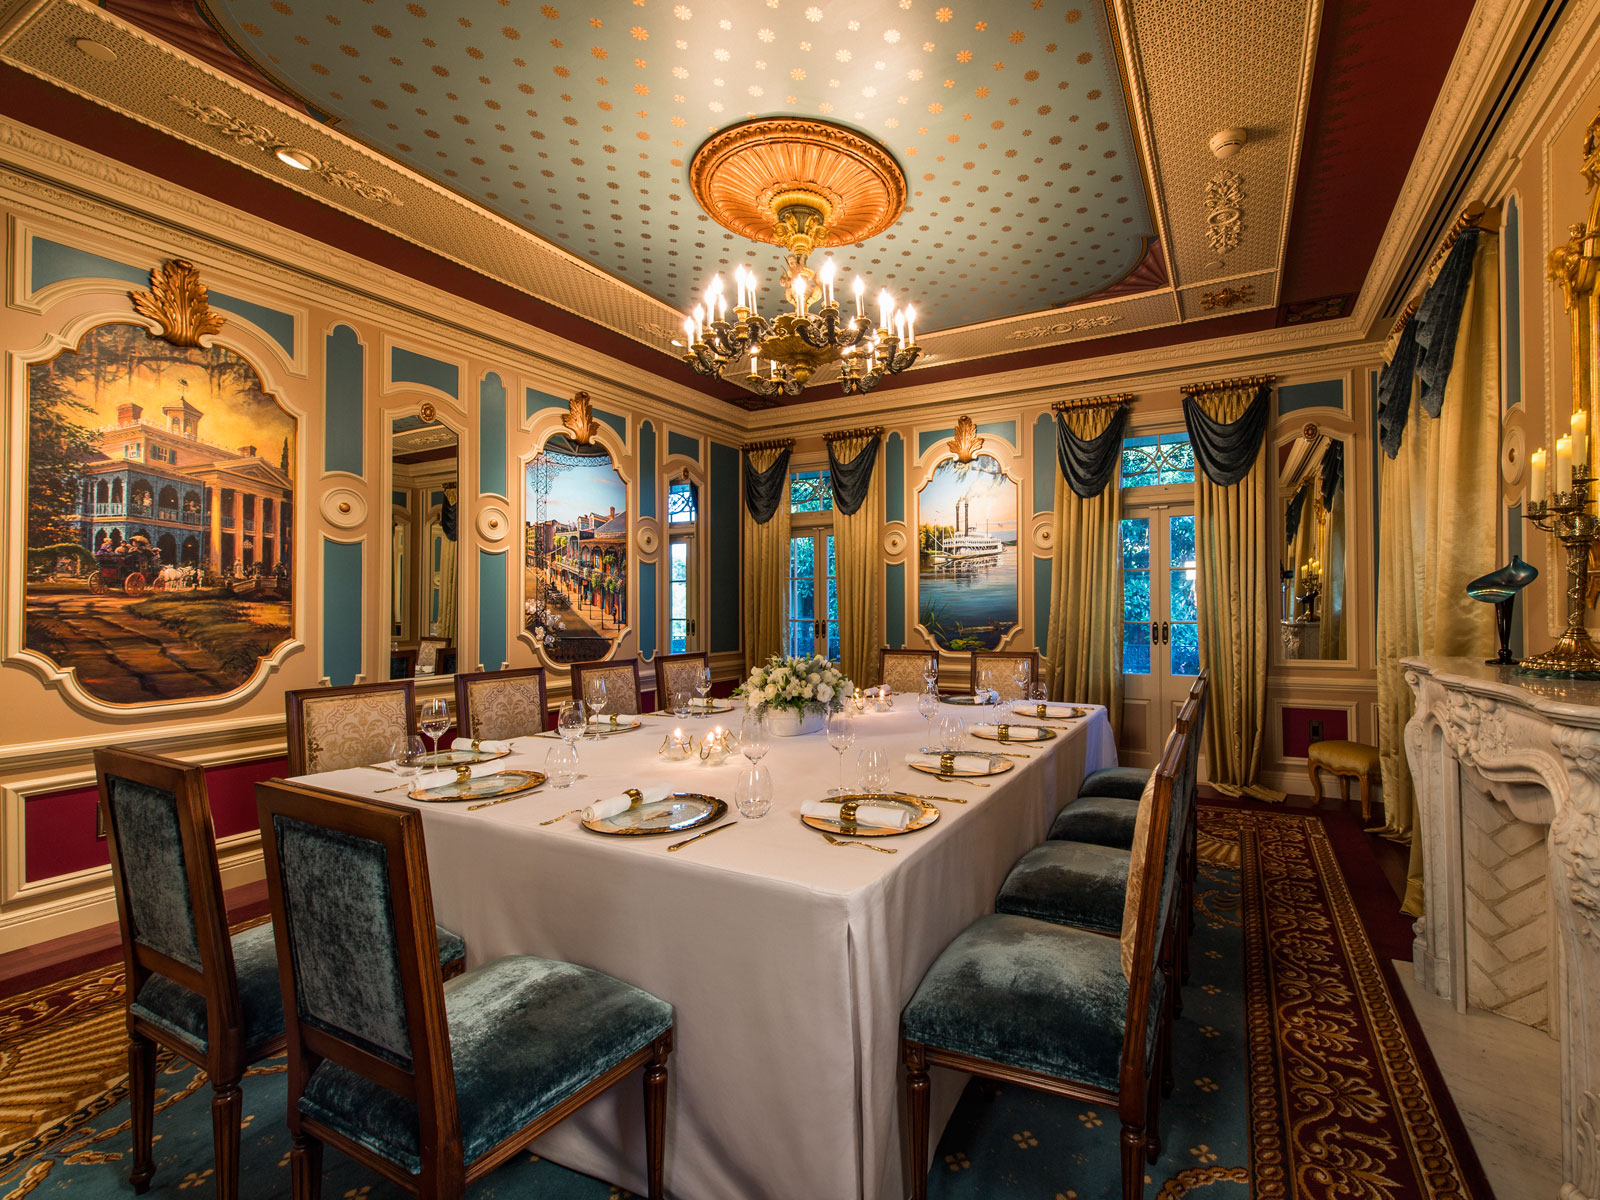 21 Royal Dining Room